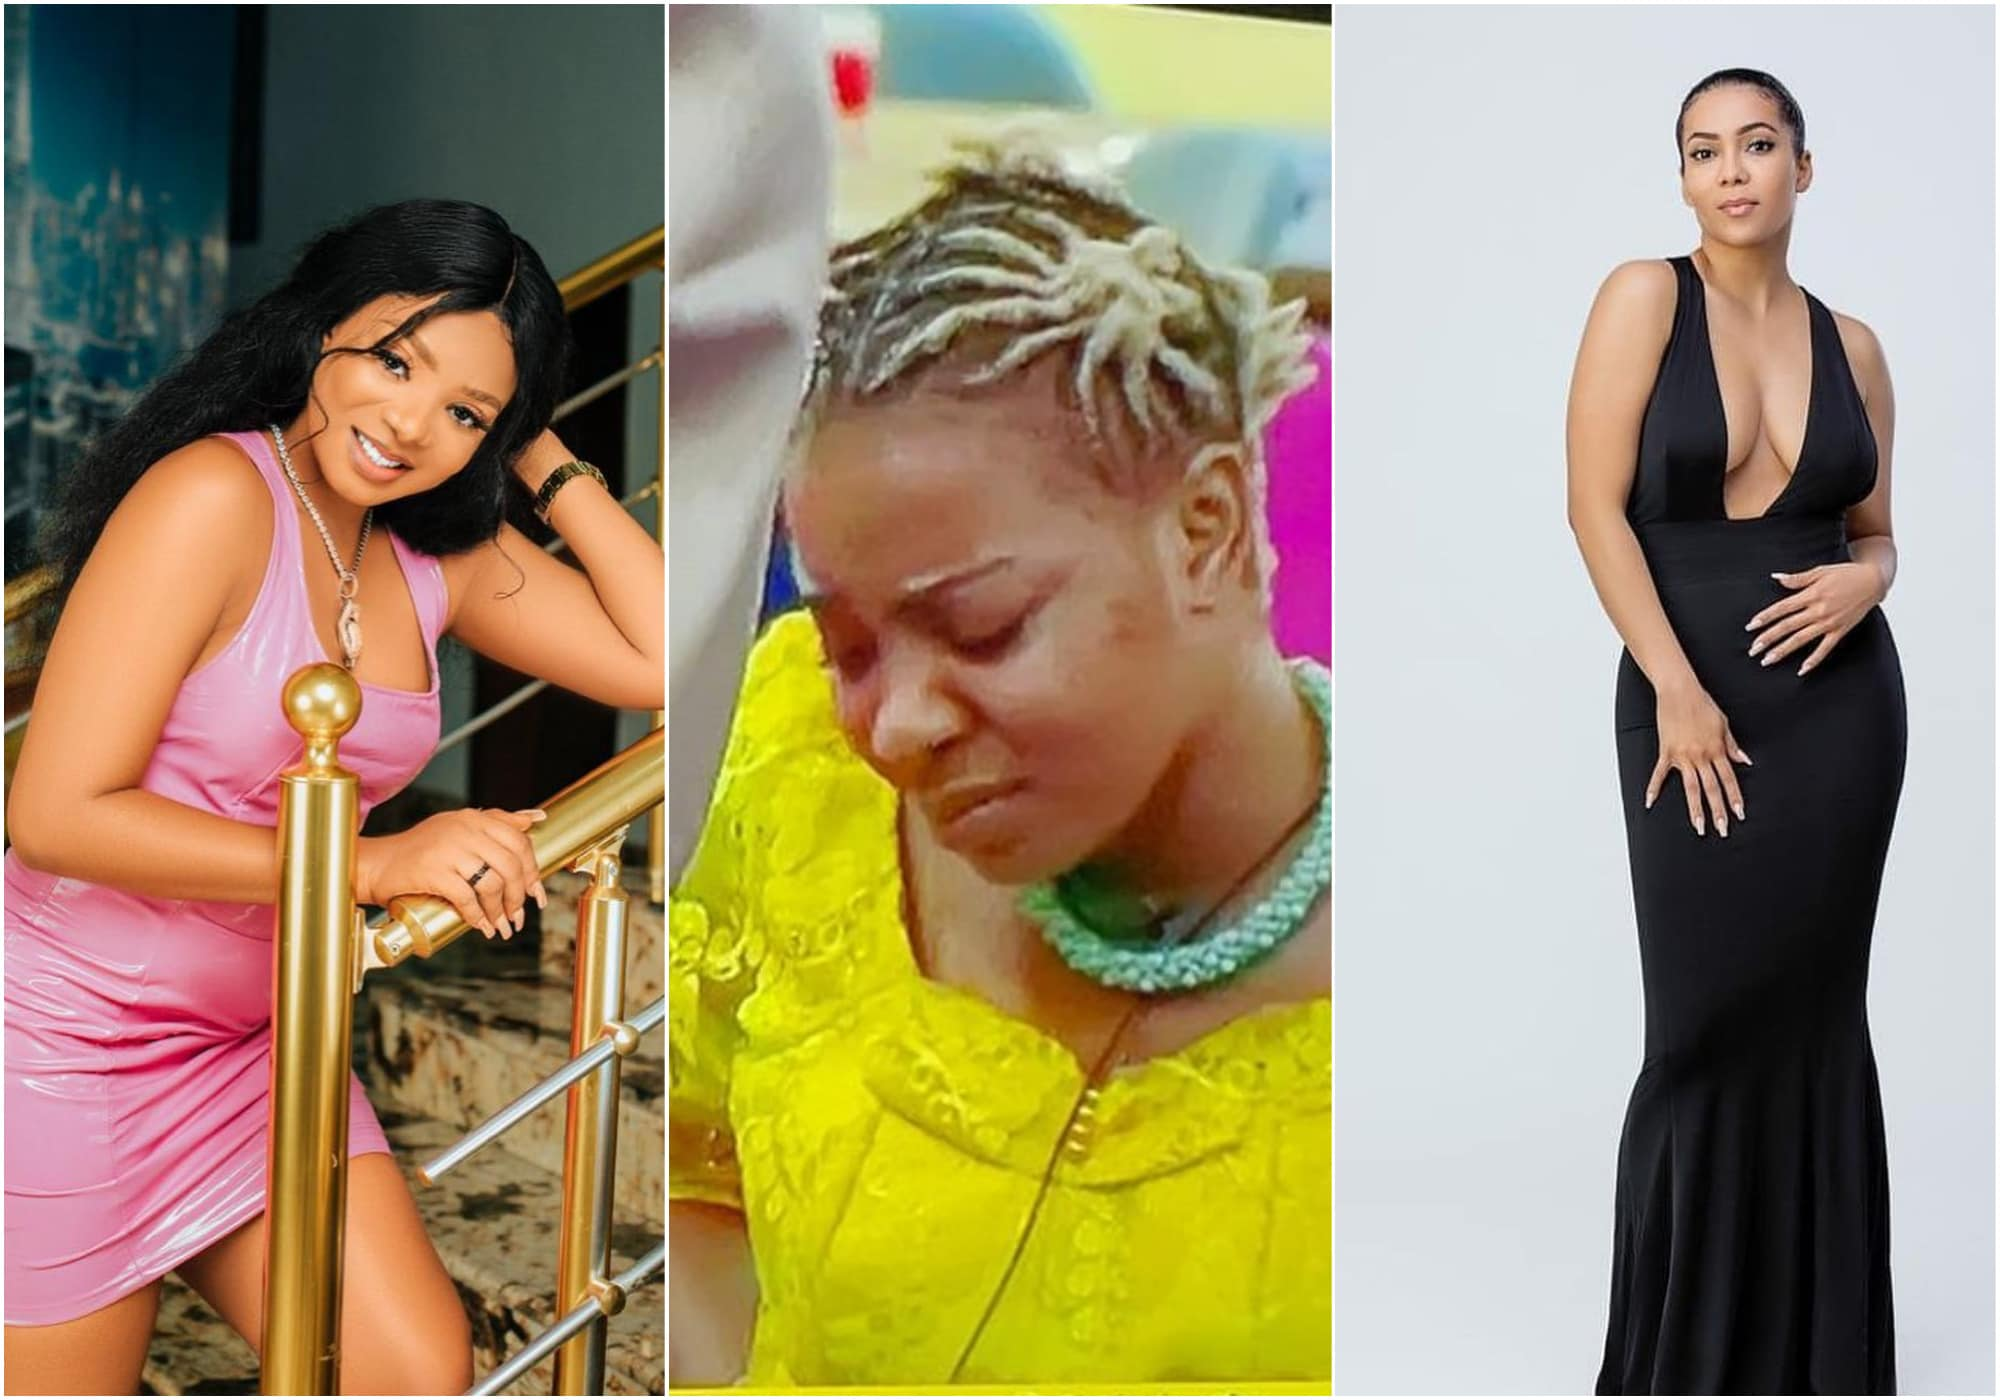 'I regret not knowing Maria' - Queen cries out hours after Maria's eviction